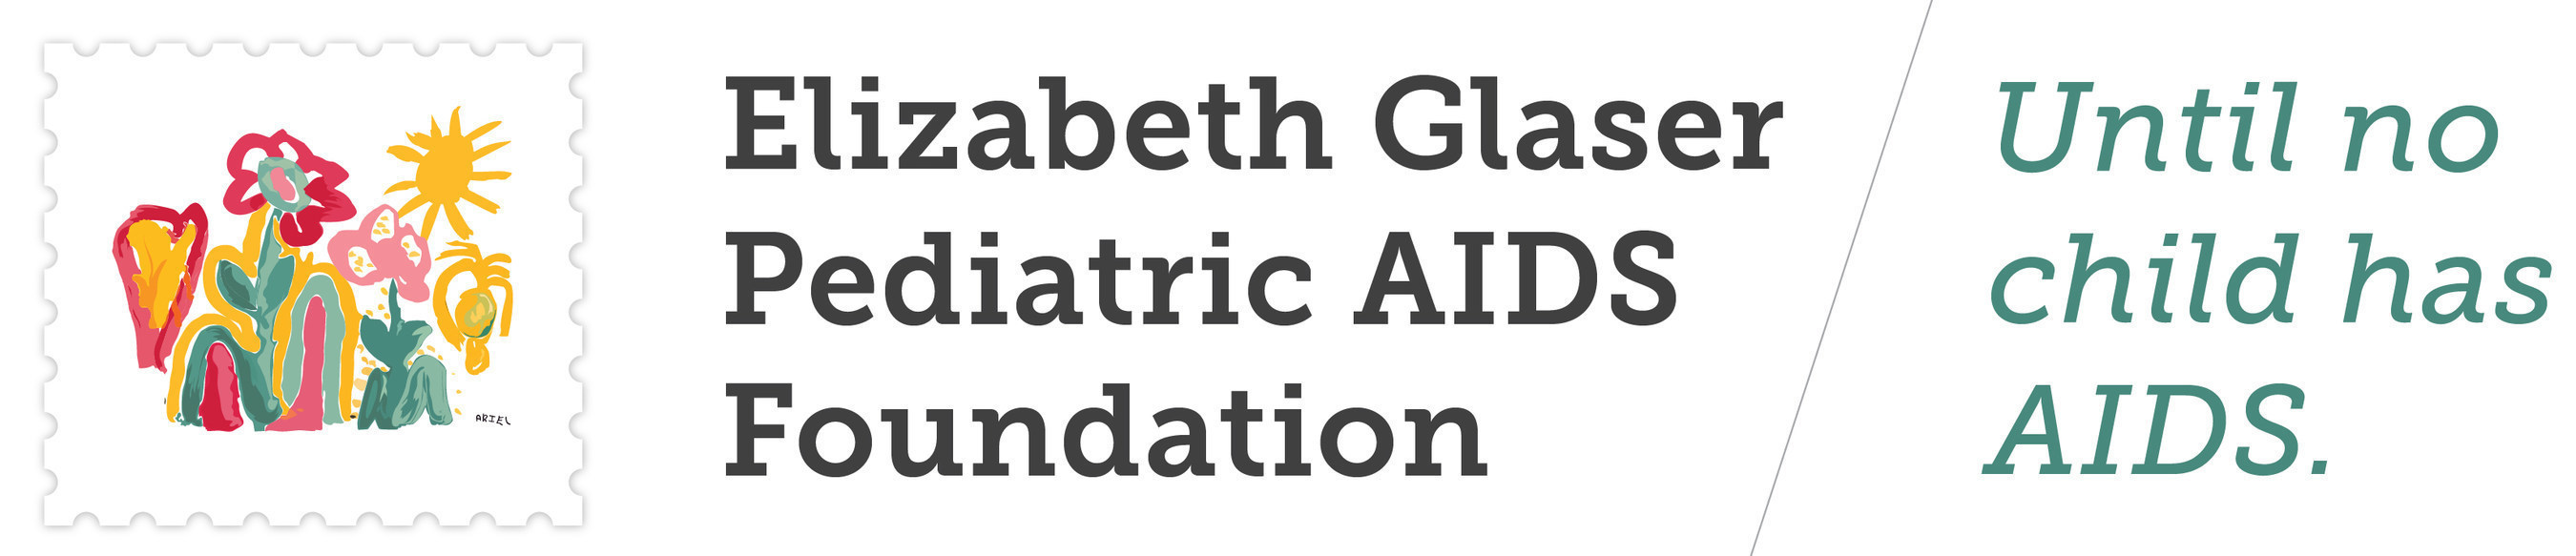 Celebrity Heroes To Join Fight For An AIDS-free Future At Elizabeth Glaser Pediatric AIDS Foundation's 26th Annual 'A Time For Heroes' Family Festival